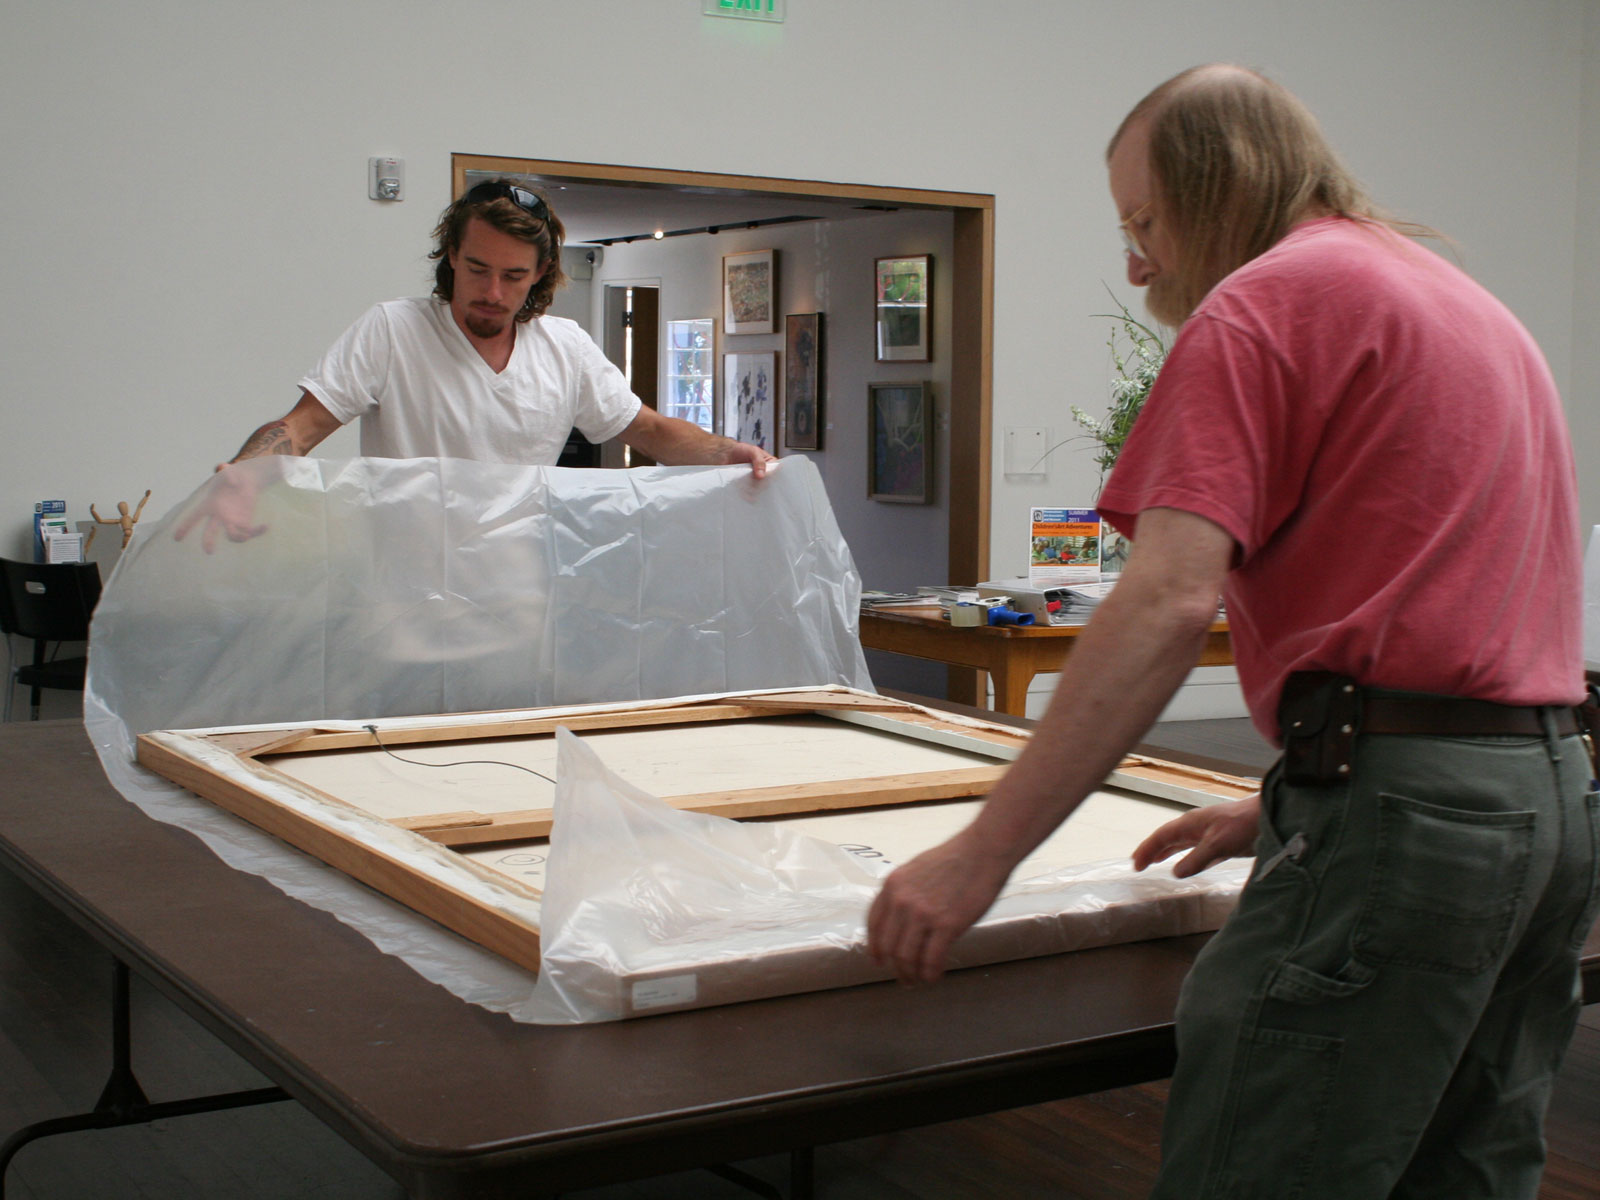 Intern Colin helps PAAM Archivist James Zimmerman wrap a painting in plastic for safe transportation